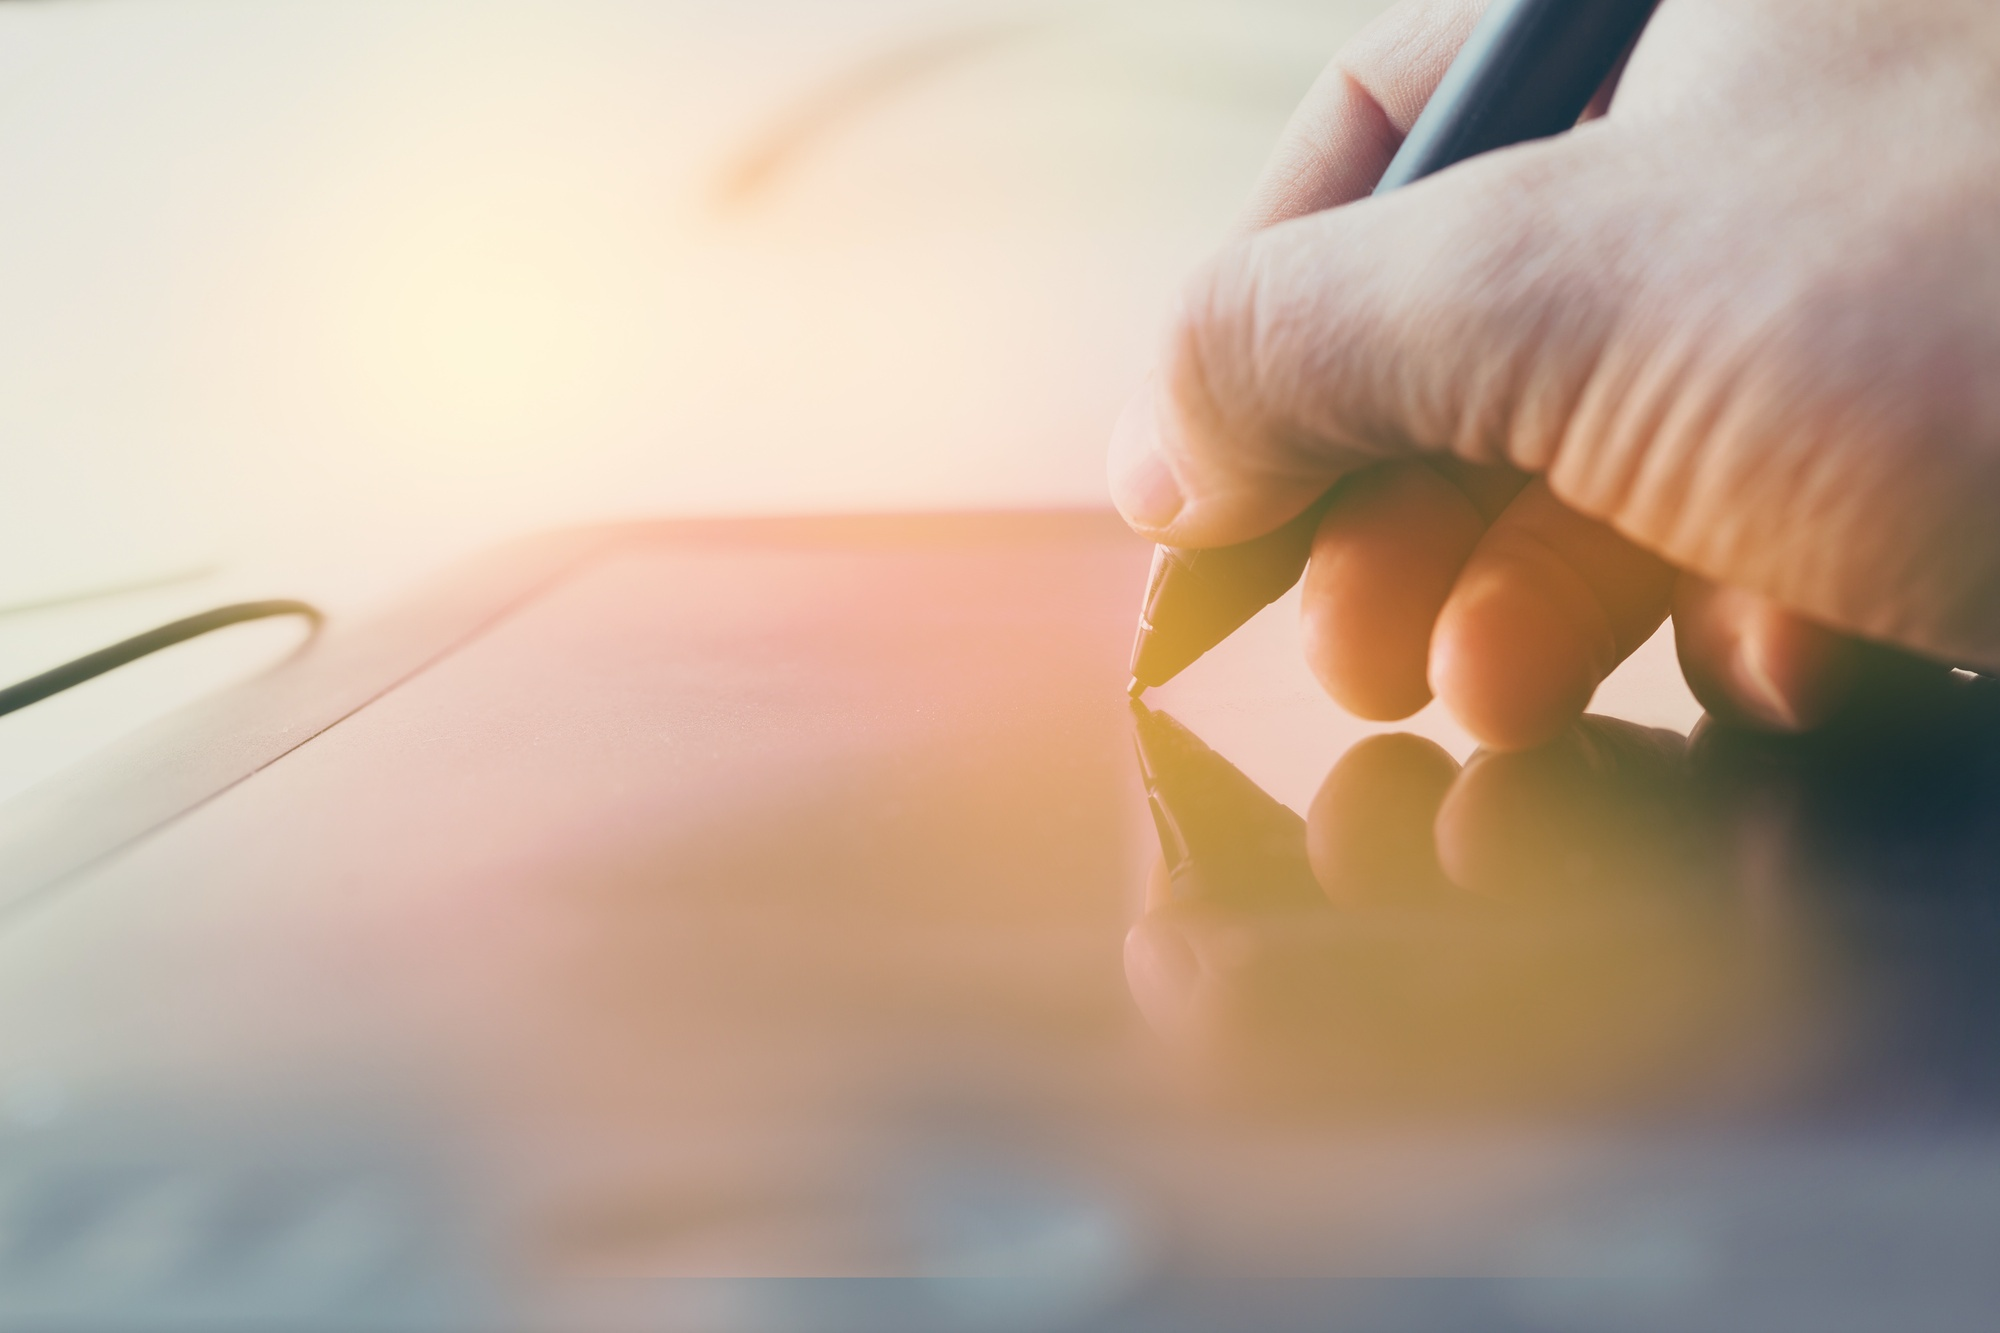 Concept of a digital signature on a tablet in the modern world